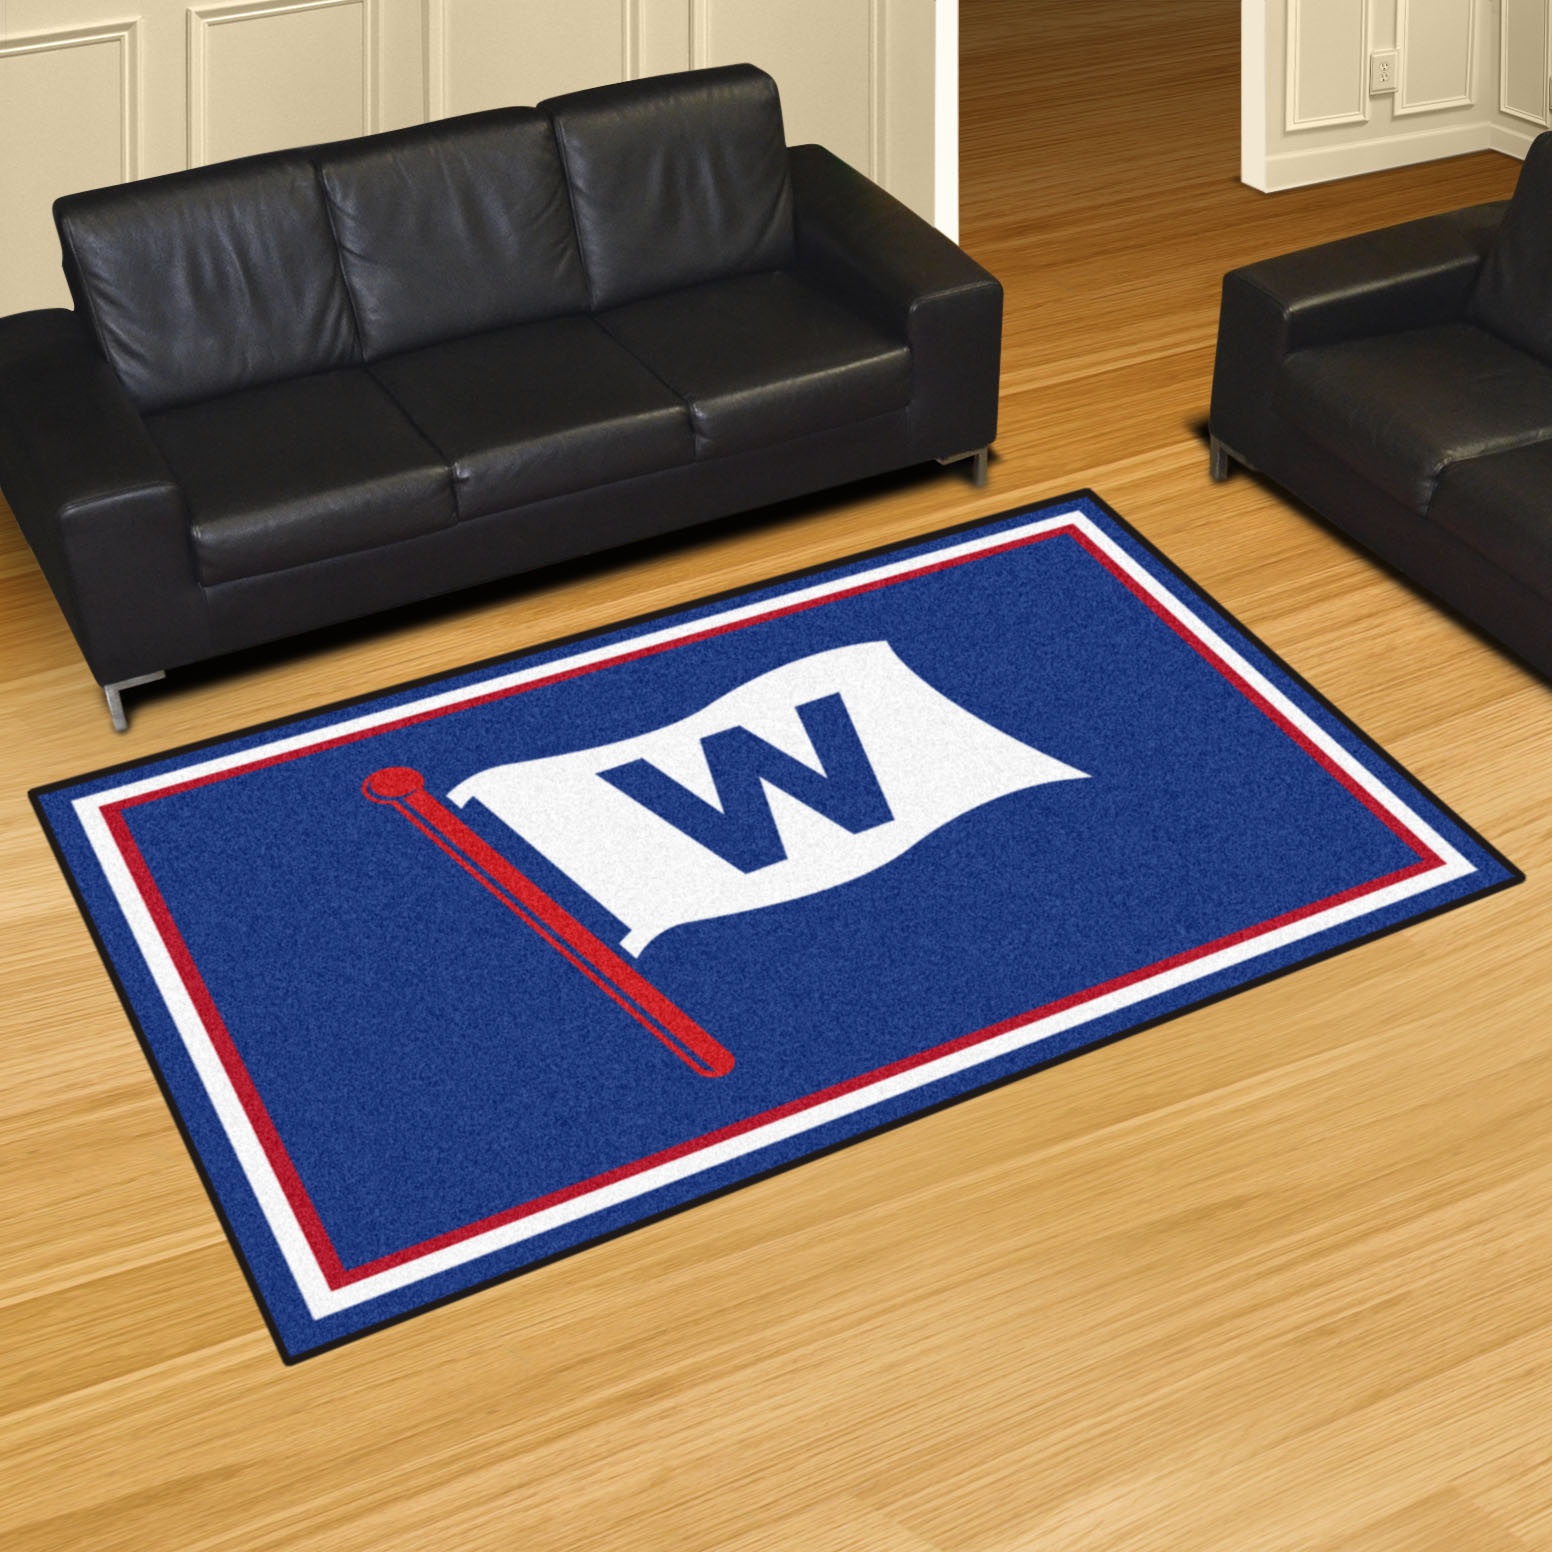 Chicago Cubs FLY THE W 5x8 Area Rug